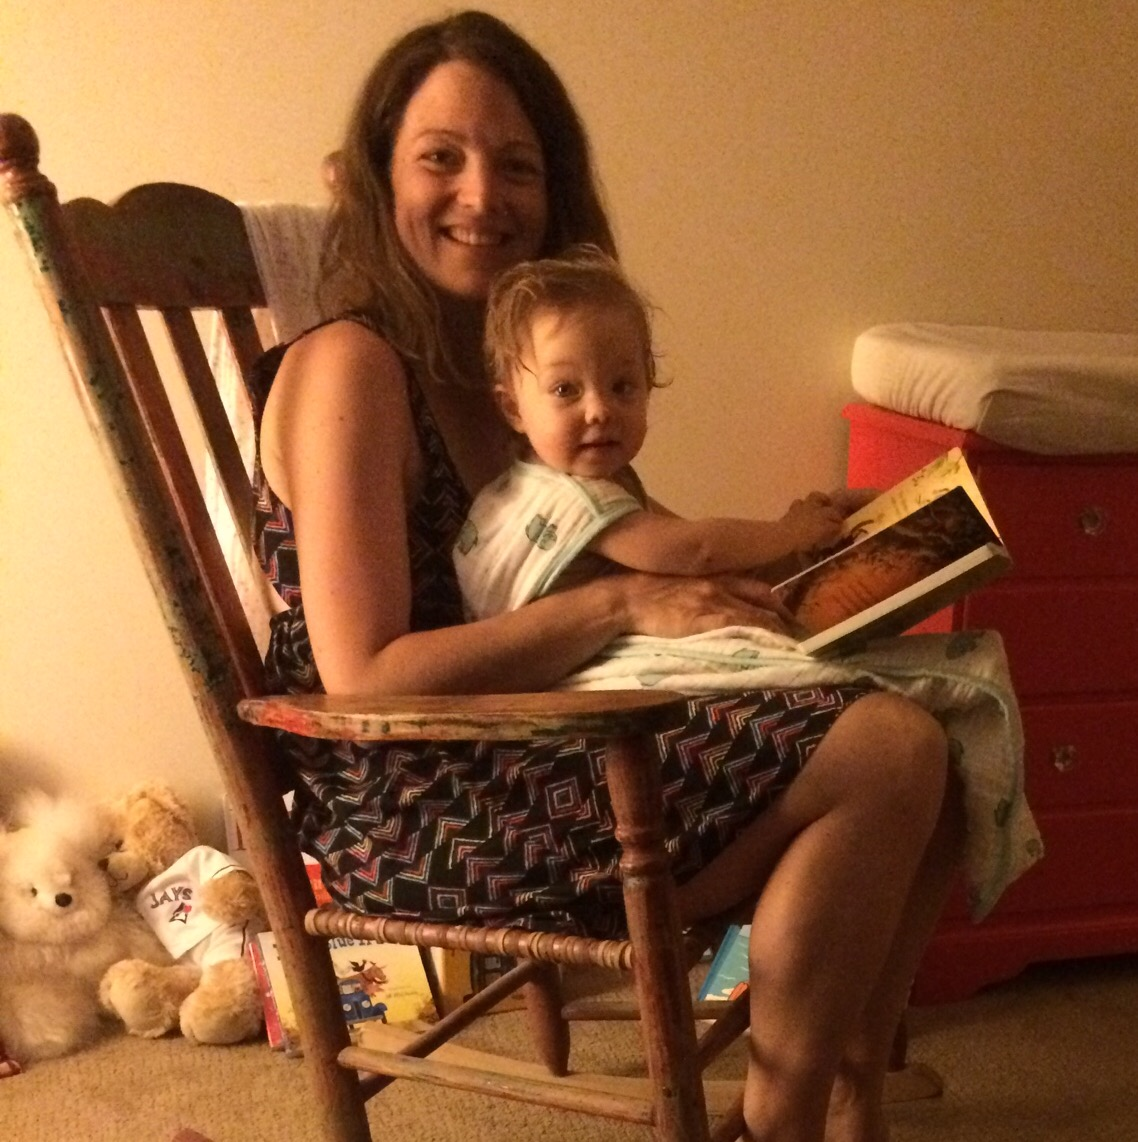 From about 6 months to 18 months, Ella loved to simply relax with a book before bed. Over the year, Ella went from eating book corners to pointing out and naming her favorite images. Books are still a BIG part of routines, but...